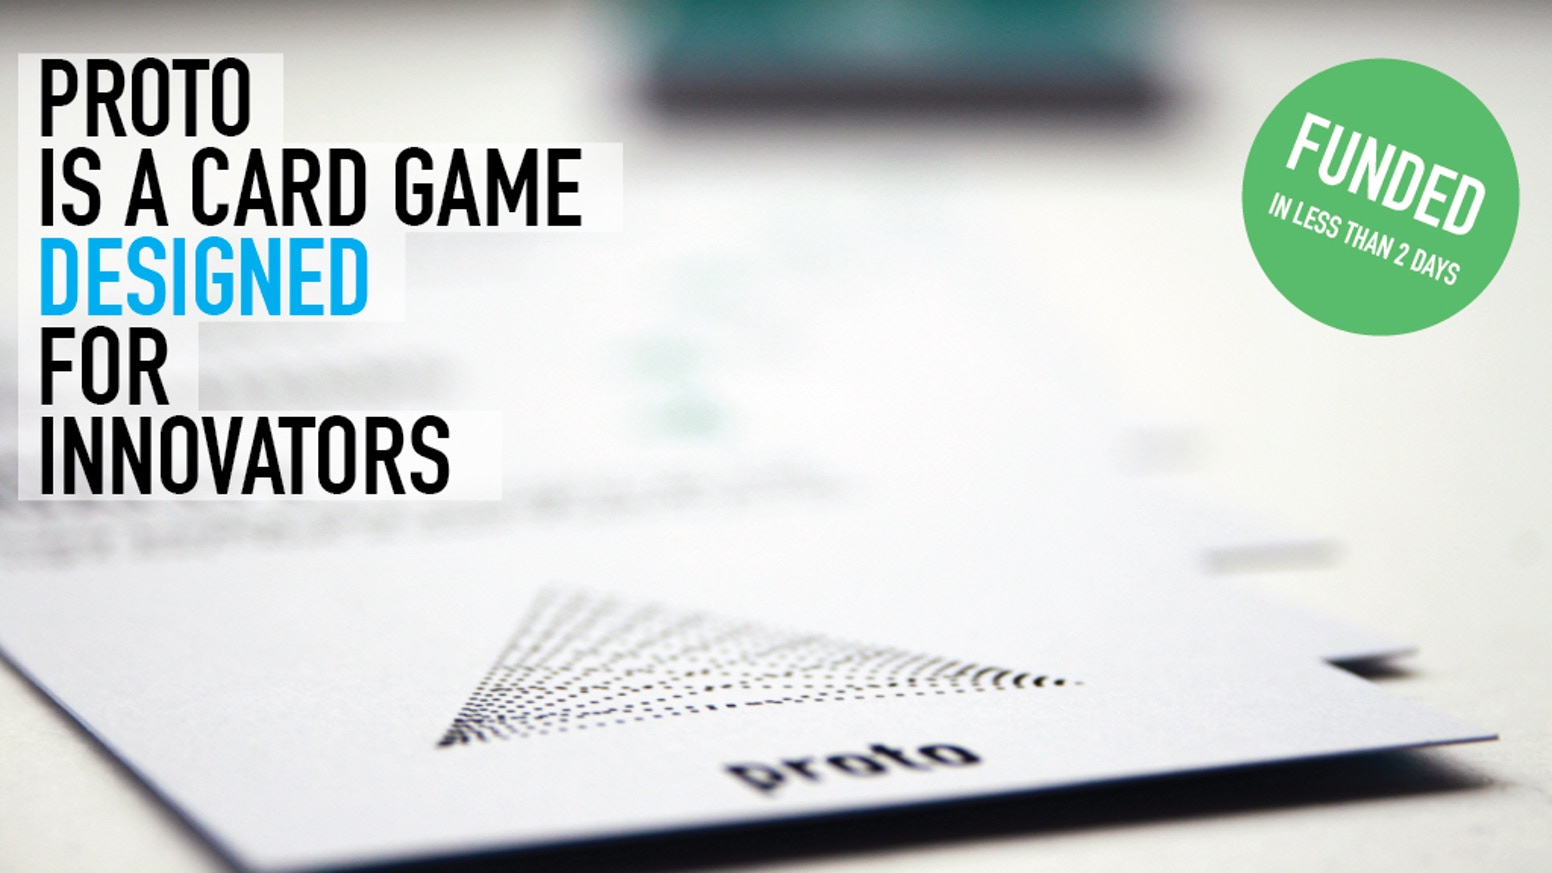 Strategize & pitch new ideas into world-class brands. PROTO is storytelling game about the chaotic experience of innovation and entrepreneurship.